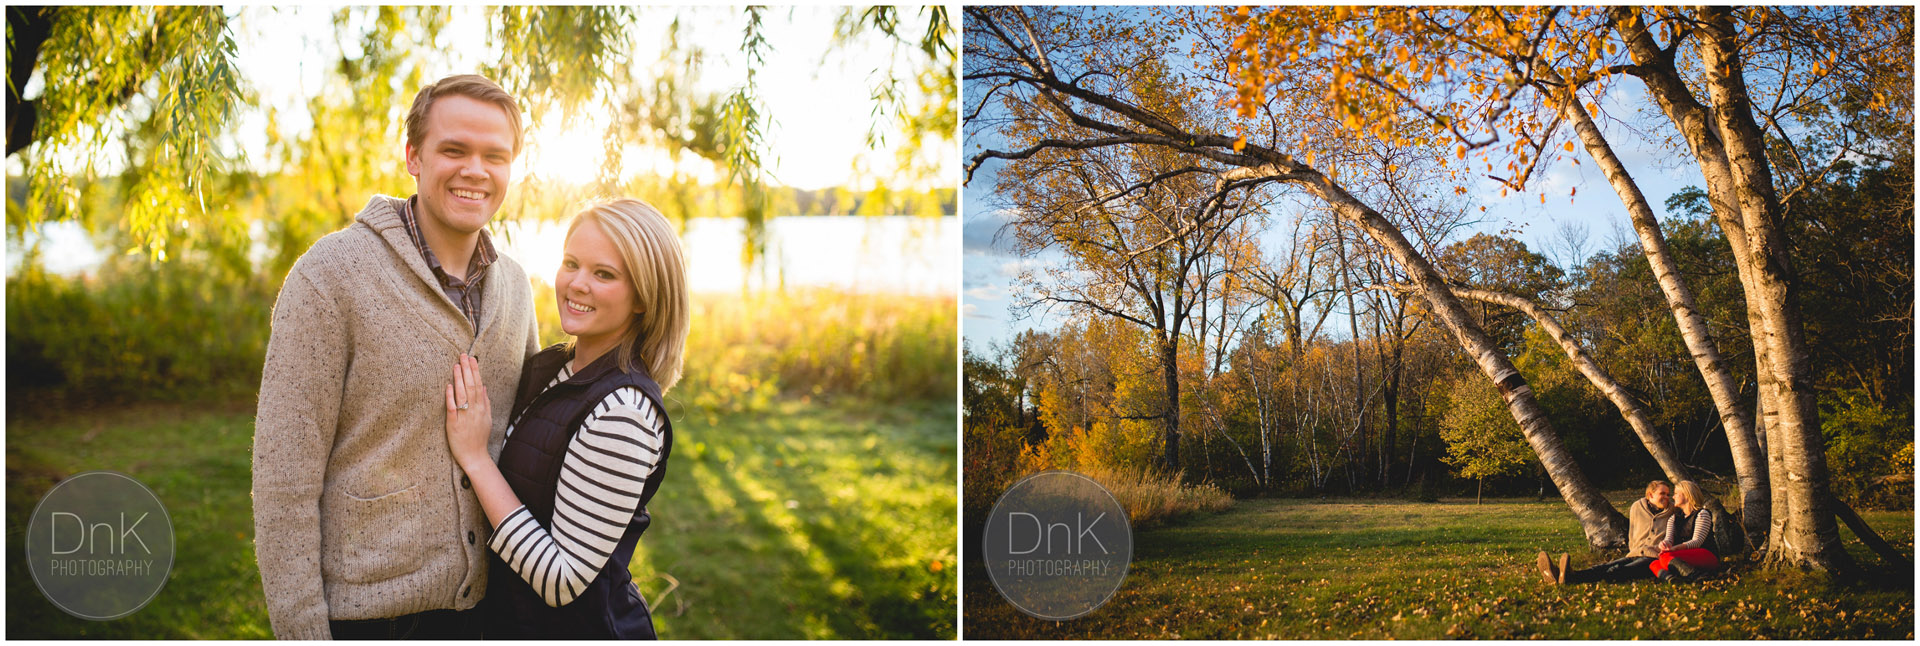 08-Fall-Engagement-Minnesota-DnK-Photography